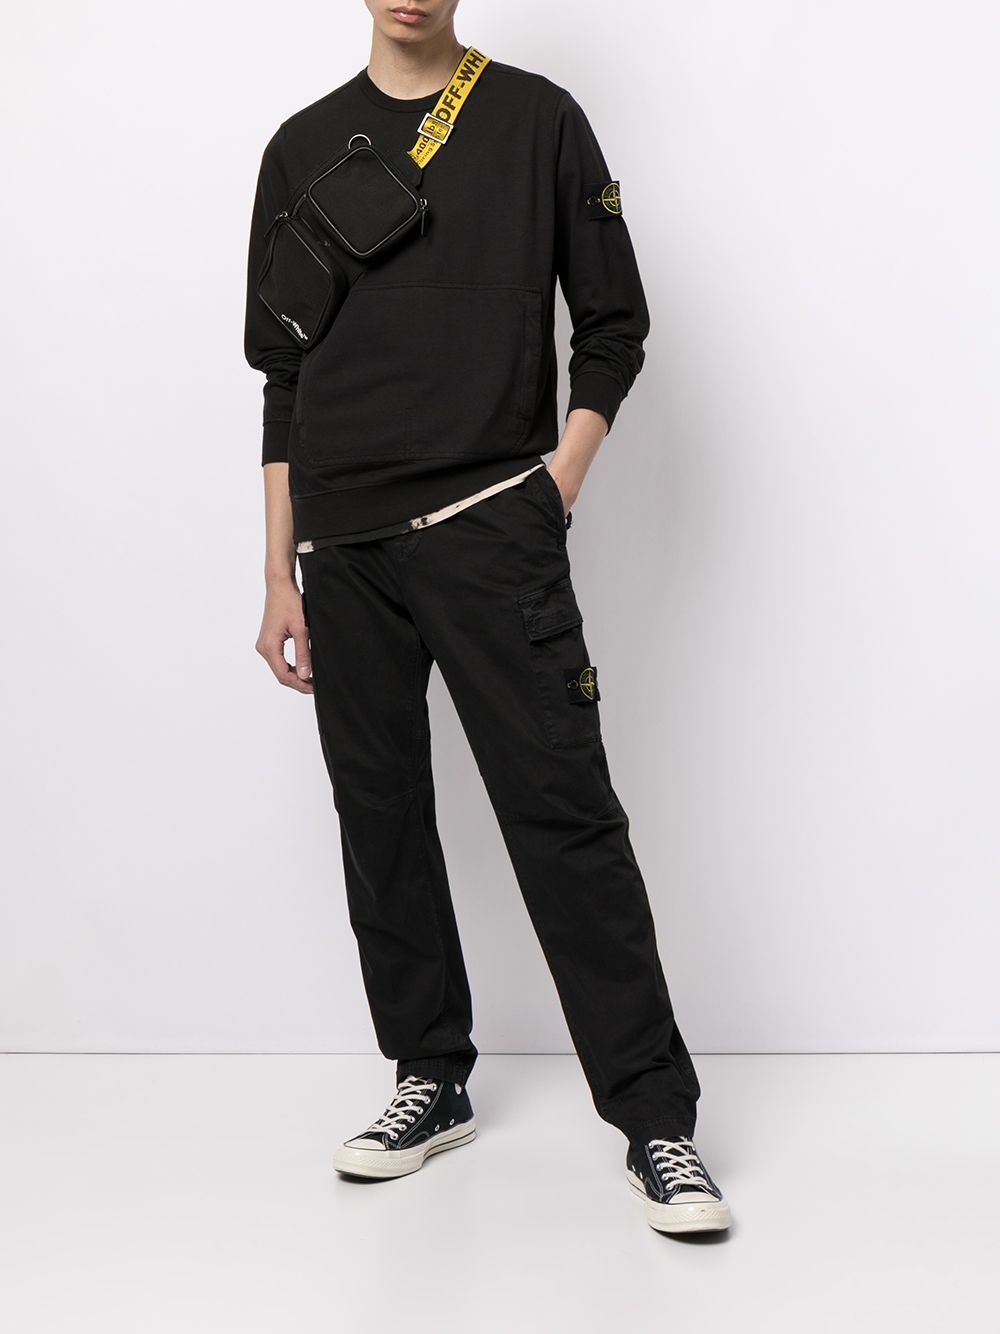 Black Logo Patch Zipper Pocket Cargo Pants